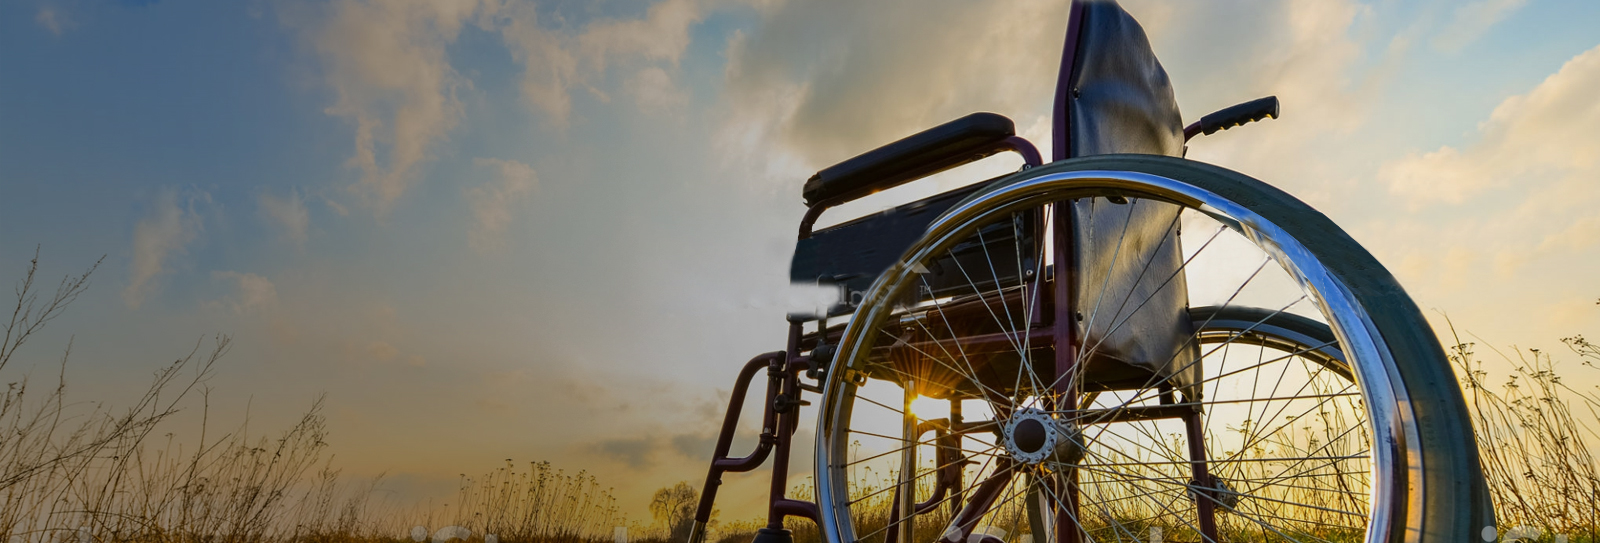 Sun shining through the spokes of a wheelchair